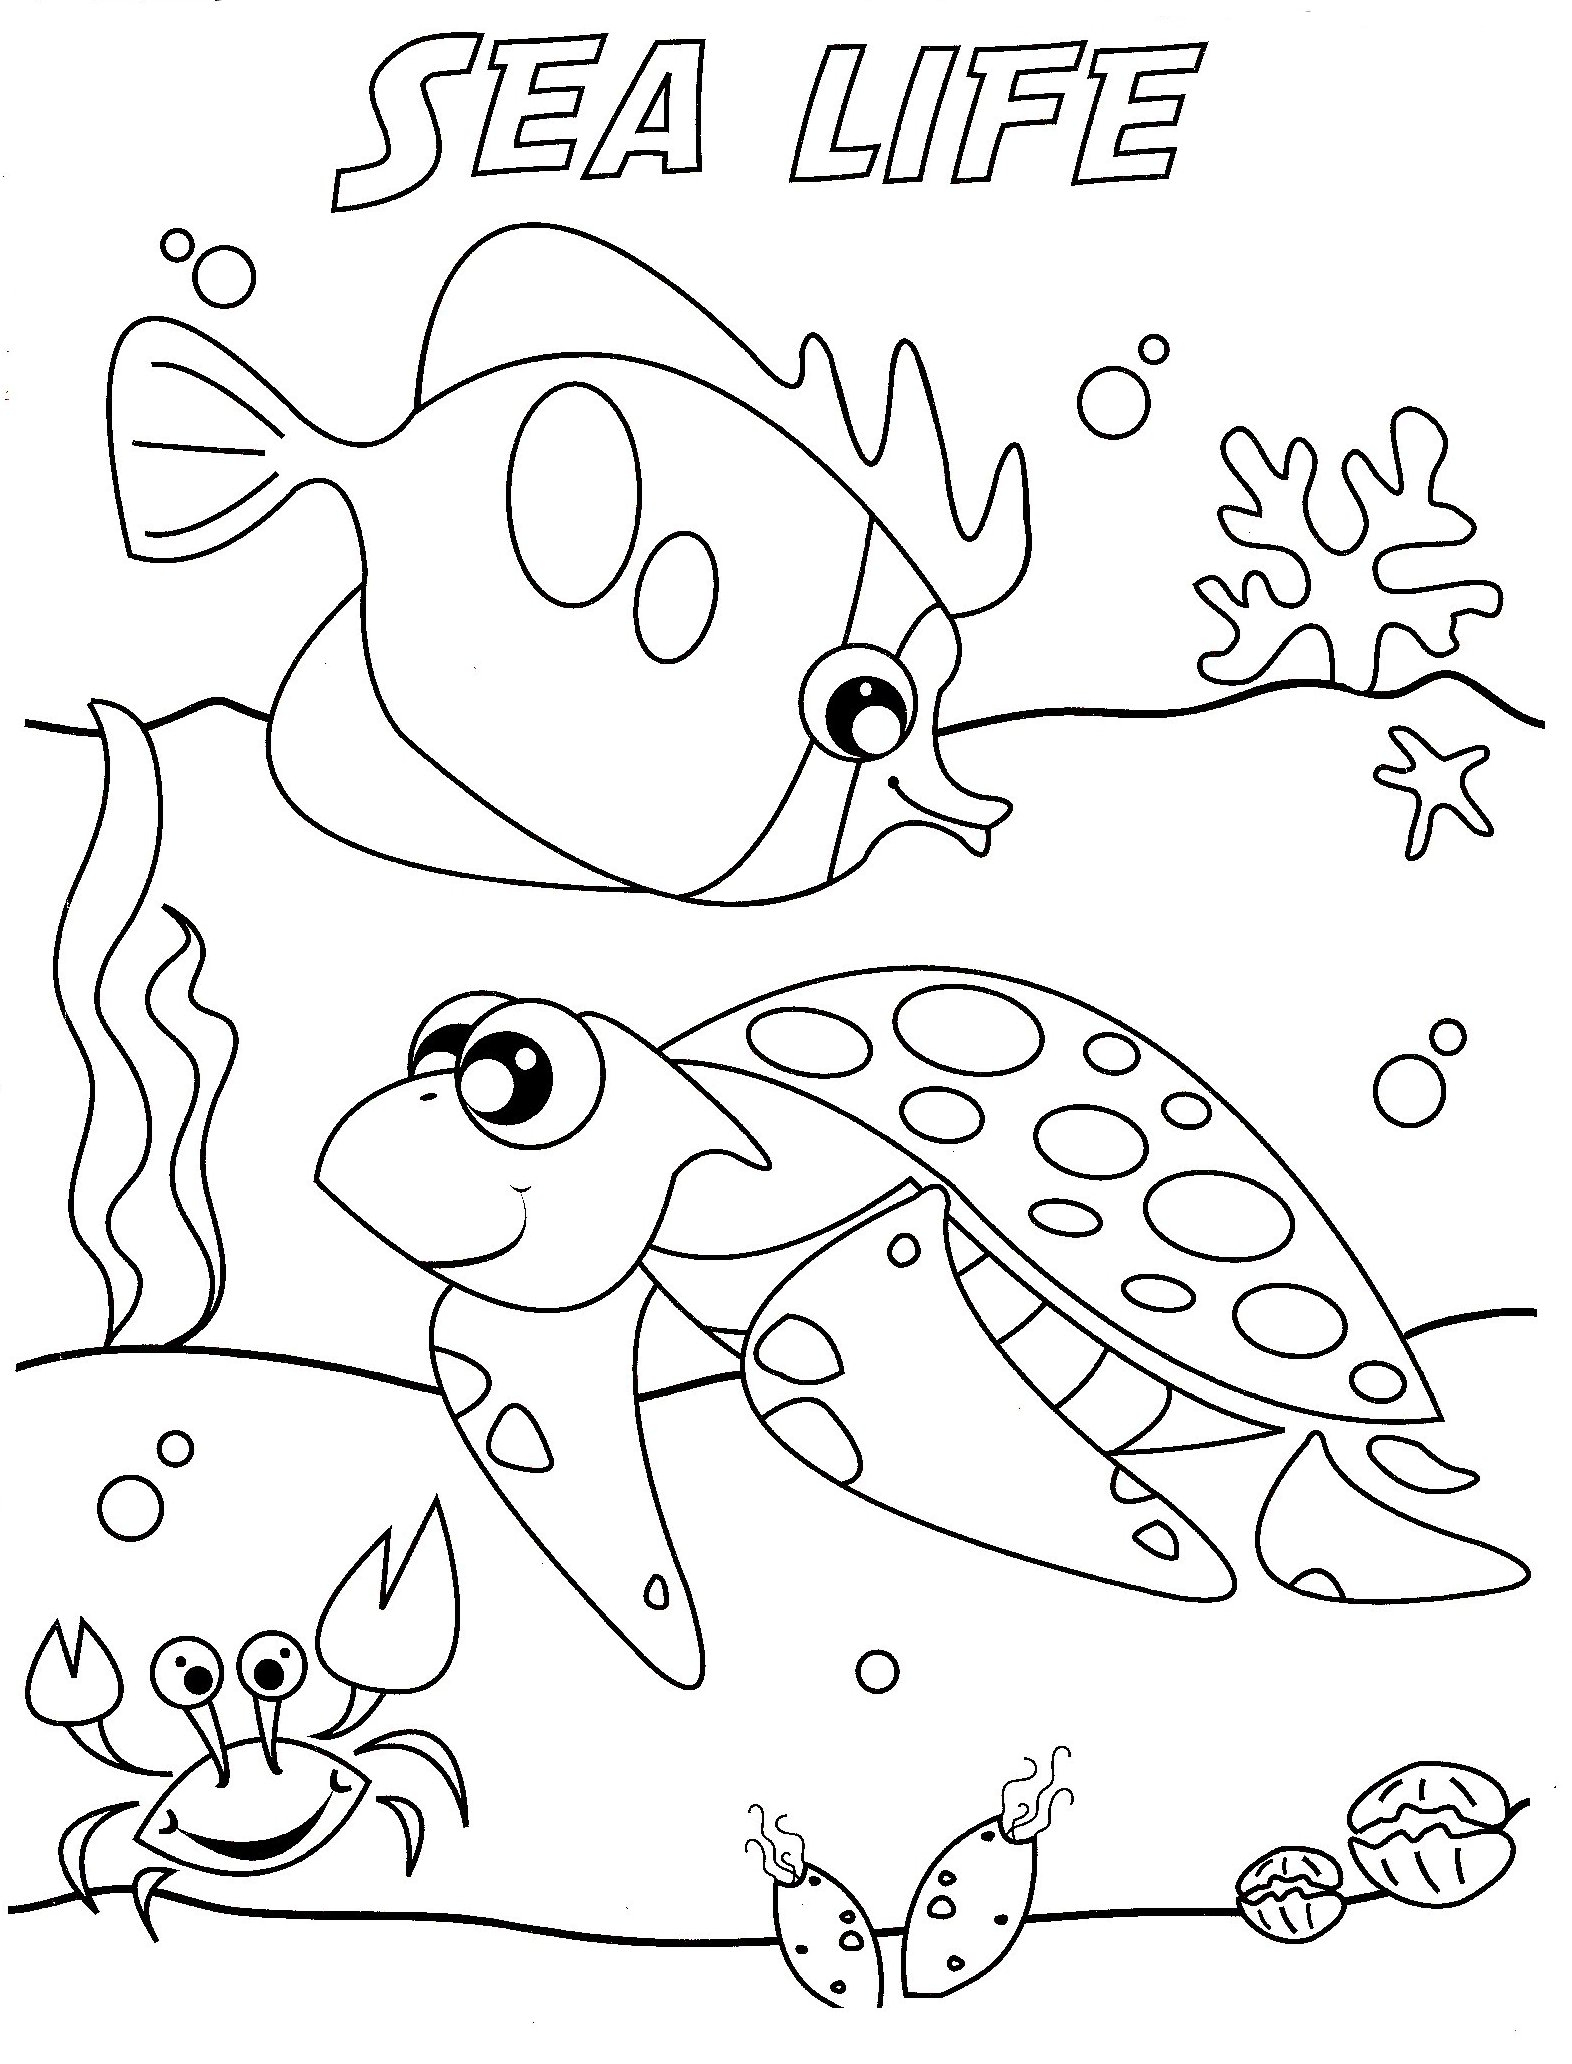 clown coloring pages - sea creature coloring